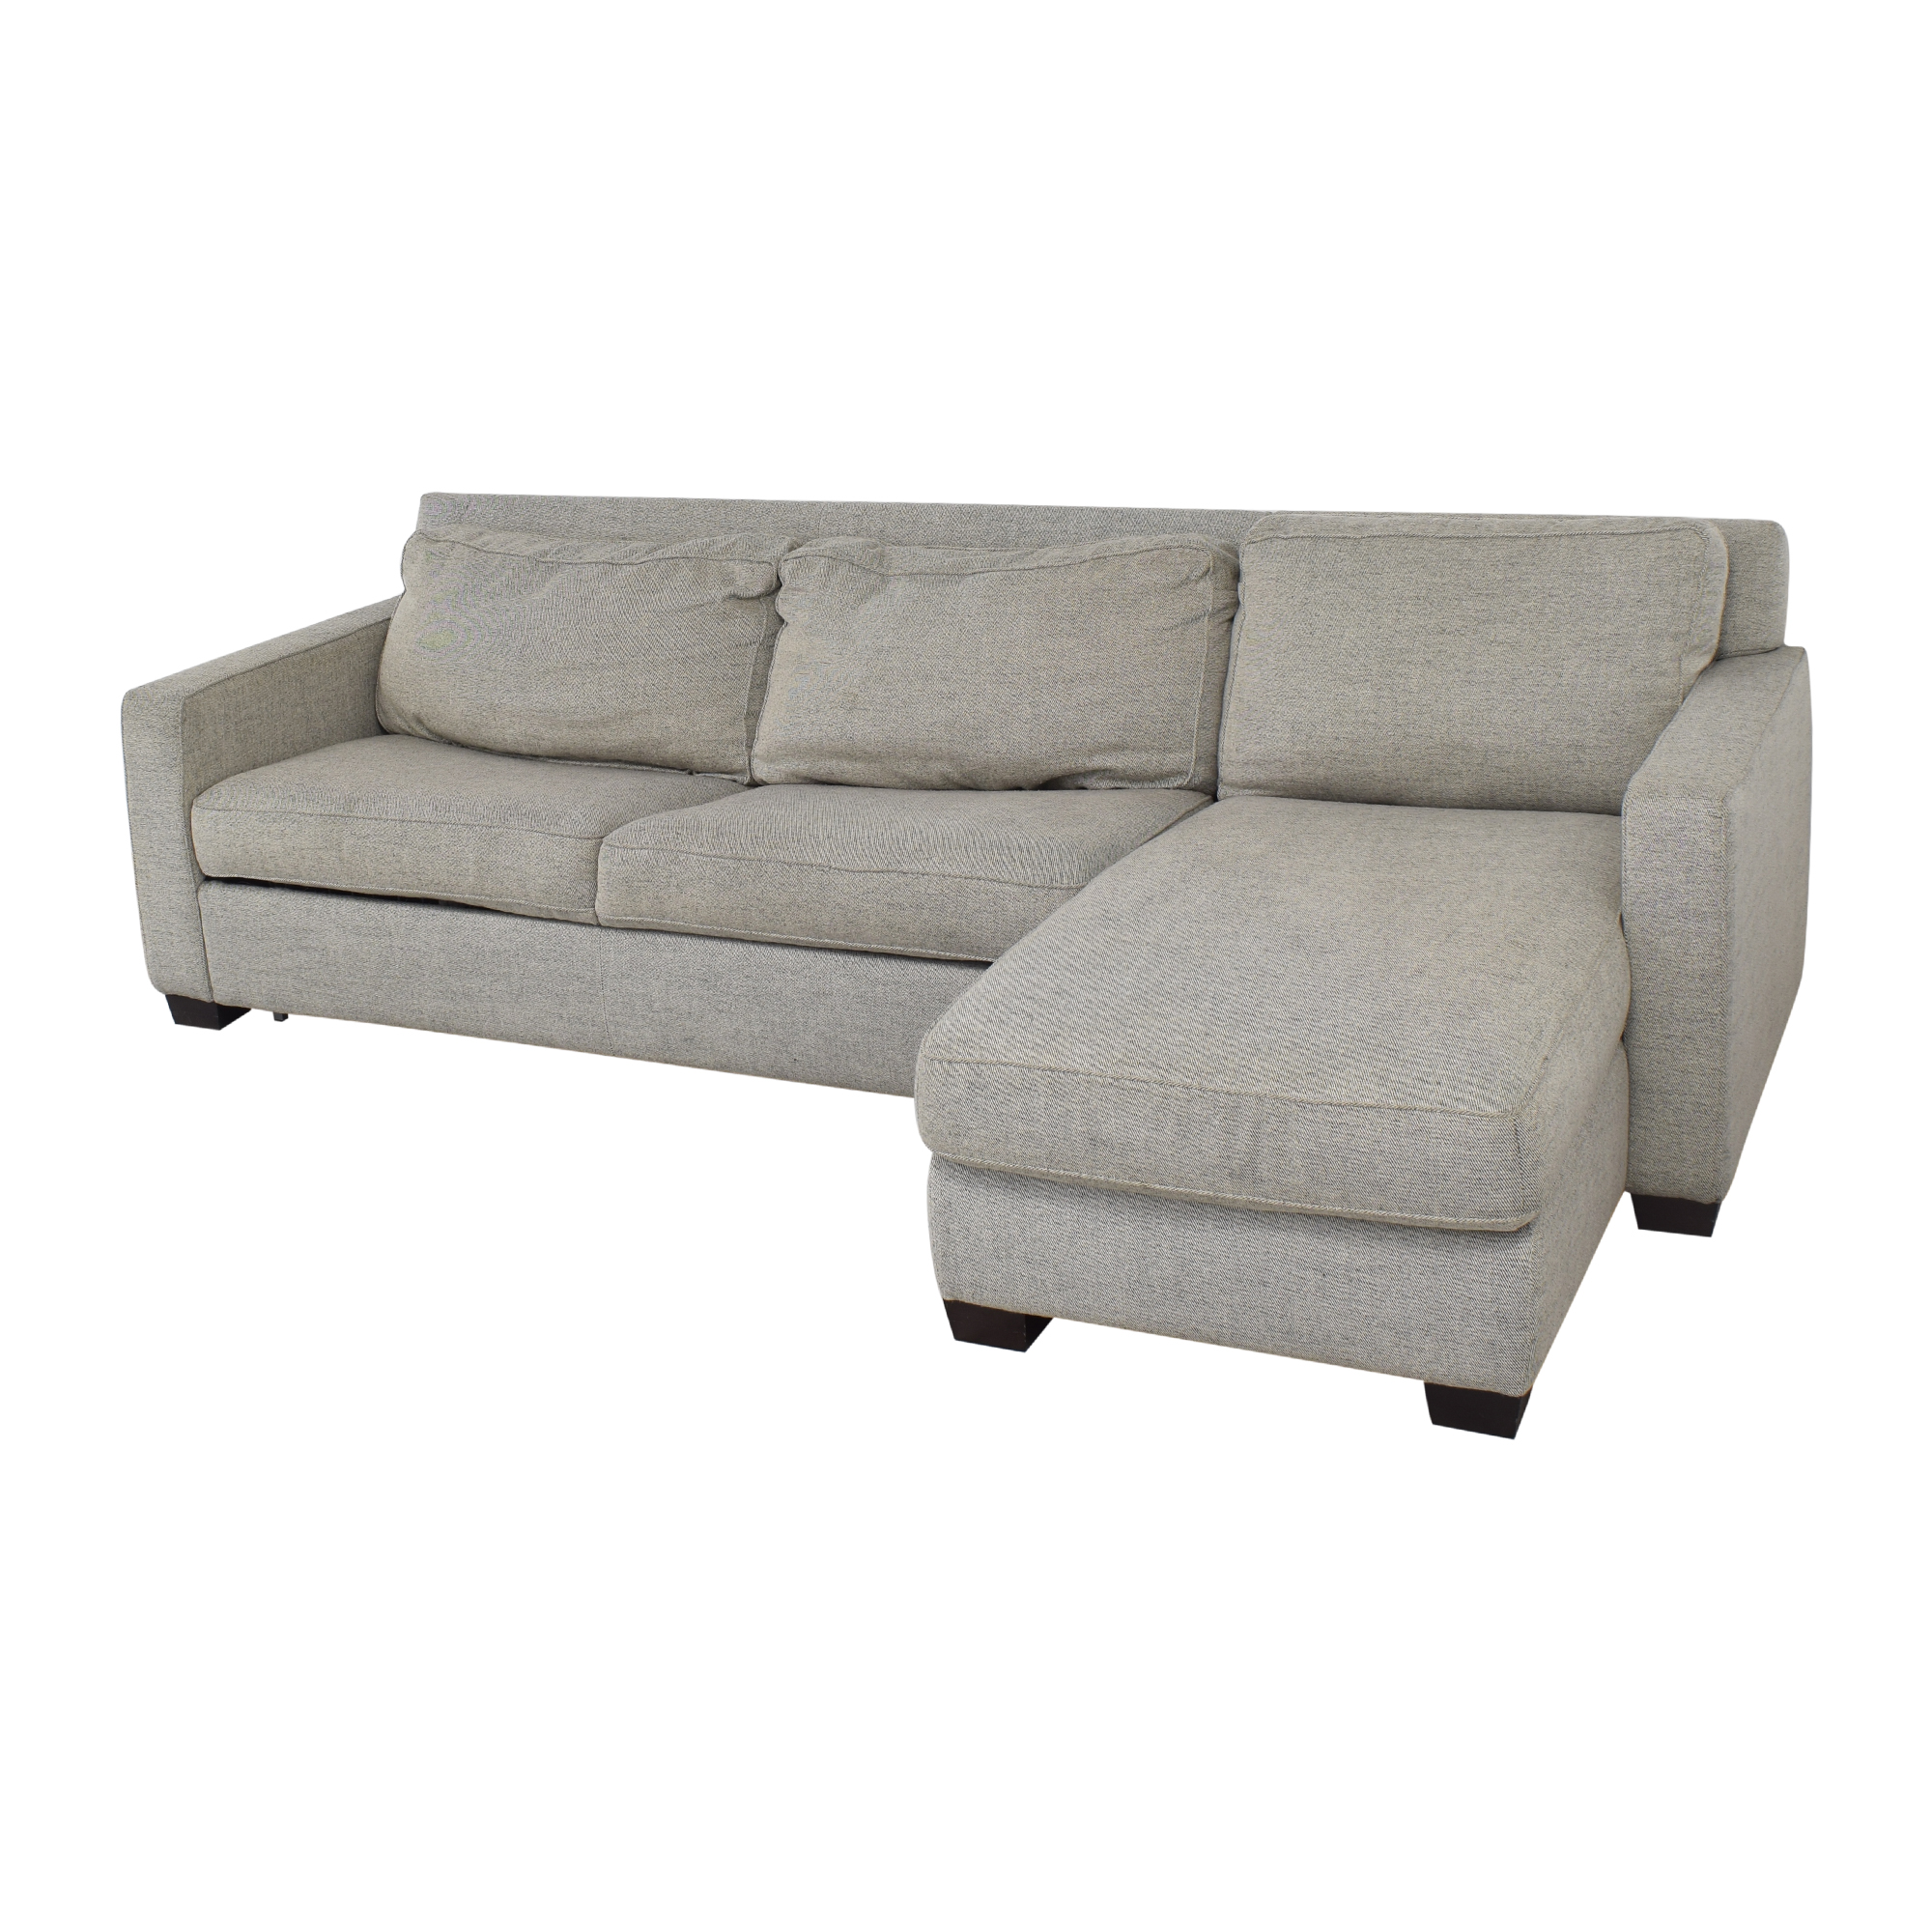 buy West Elm Henry 2-Piece Full Sleeper Sectional with Storage West Elm Sofas